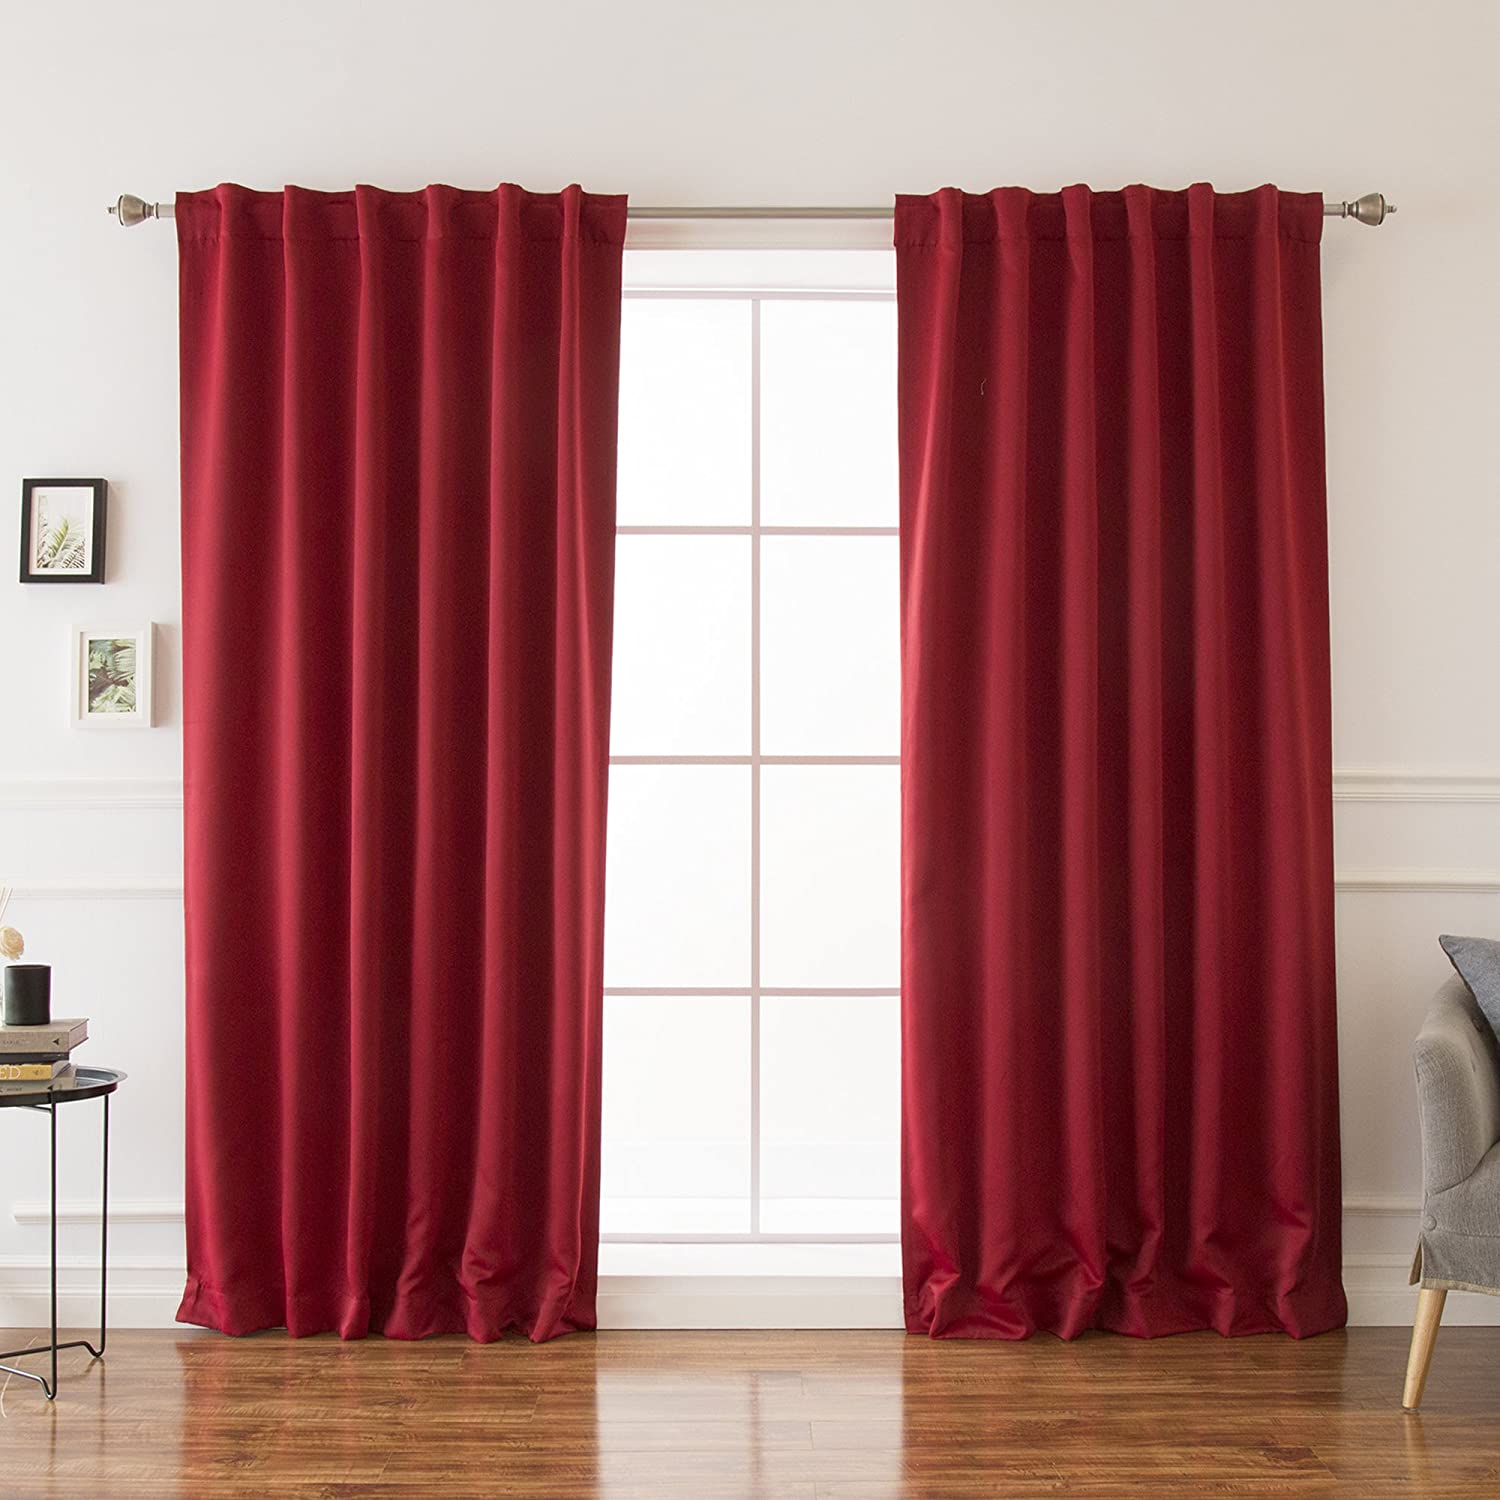 "Best Home Fashion Premium Thermal Insulated Blackout Curtains - Back Tab/Rod Pocket - Cardinal Red - 52"" W x 108"" L -Tie Backs Included (Set of 2 Panels)"